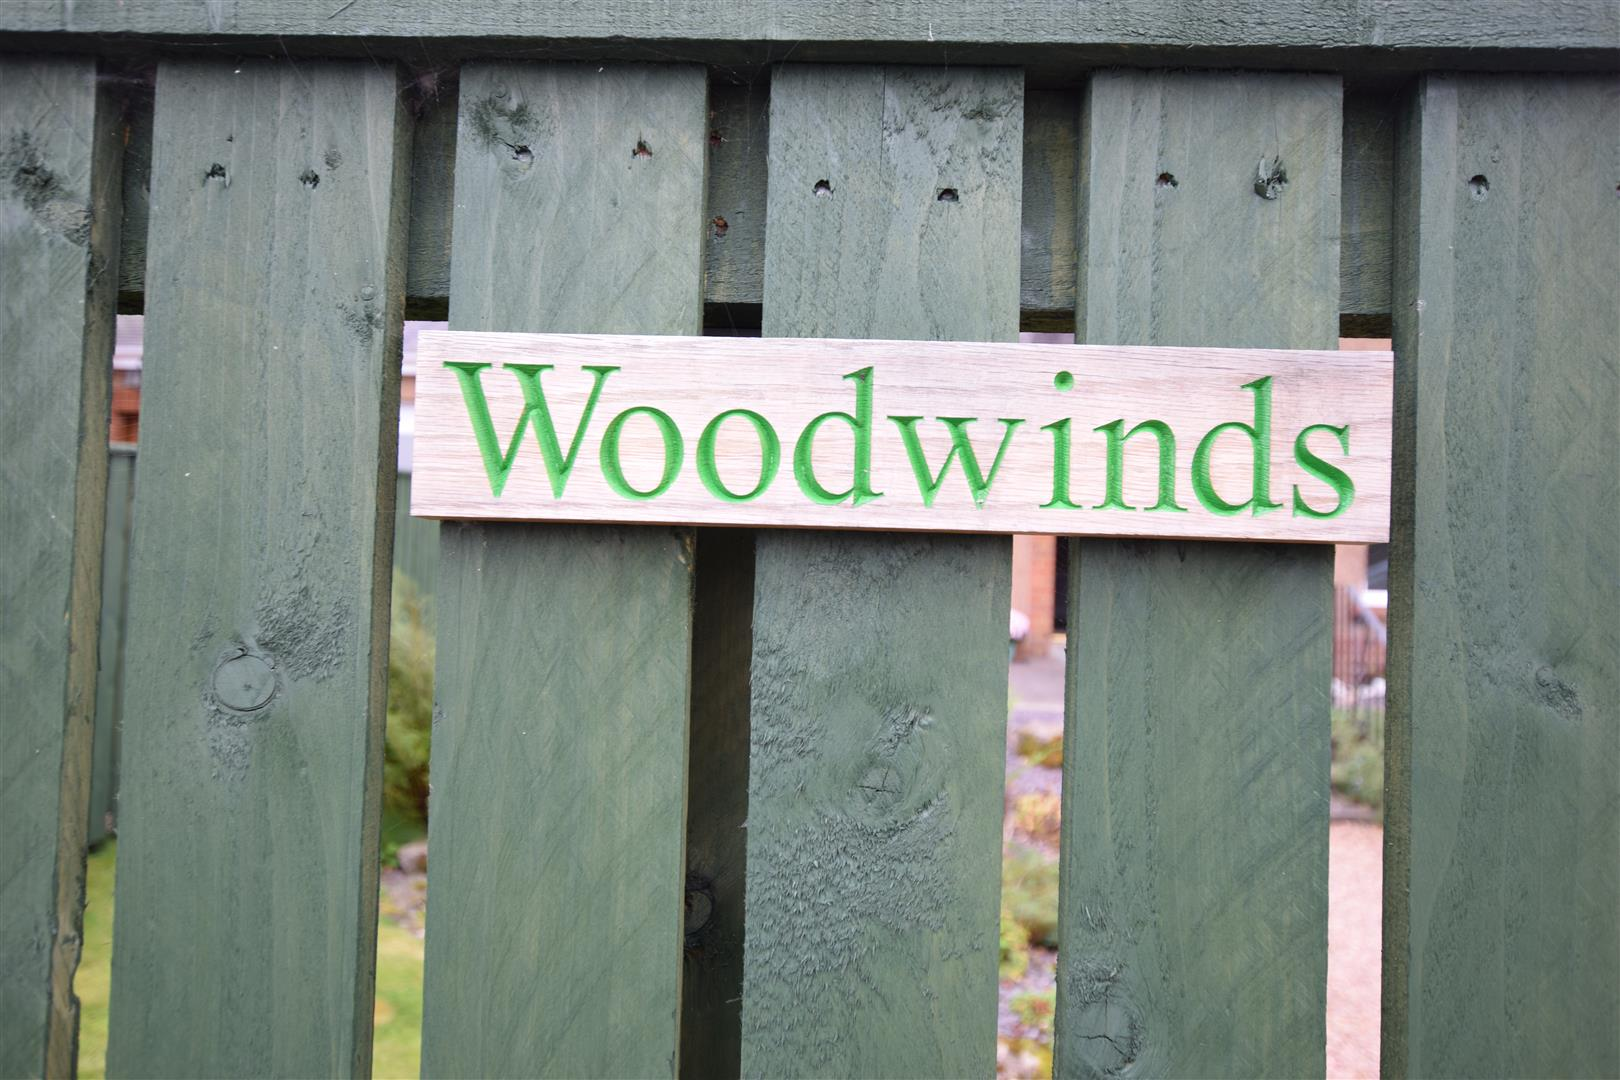 Woodwinds, Hope Place, Crieff, Perthshire, PH7 3DL, UK